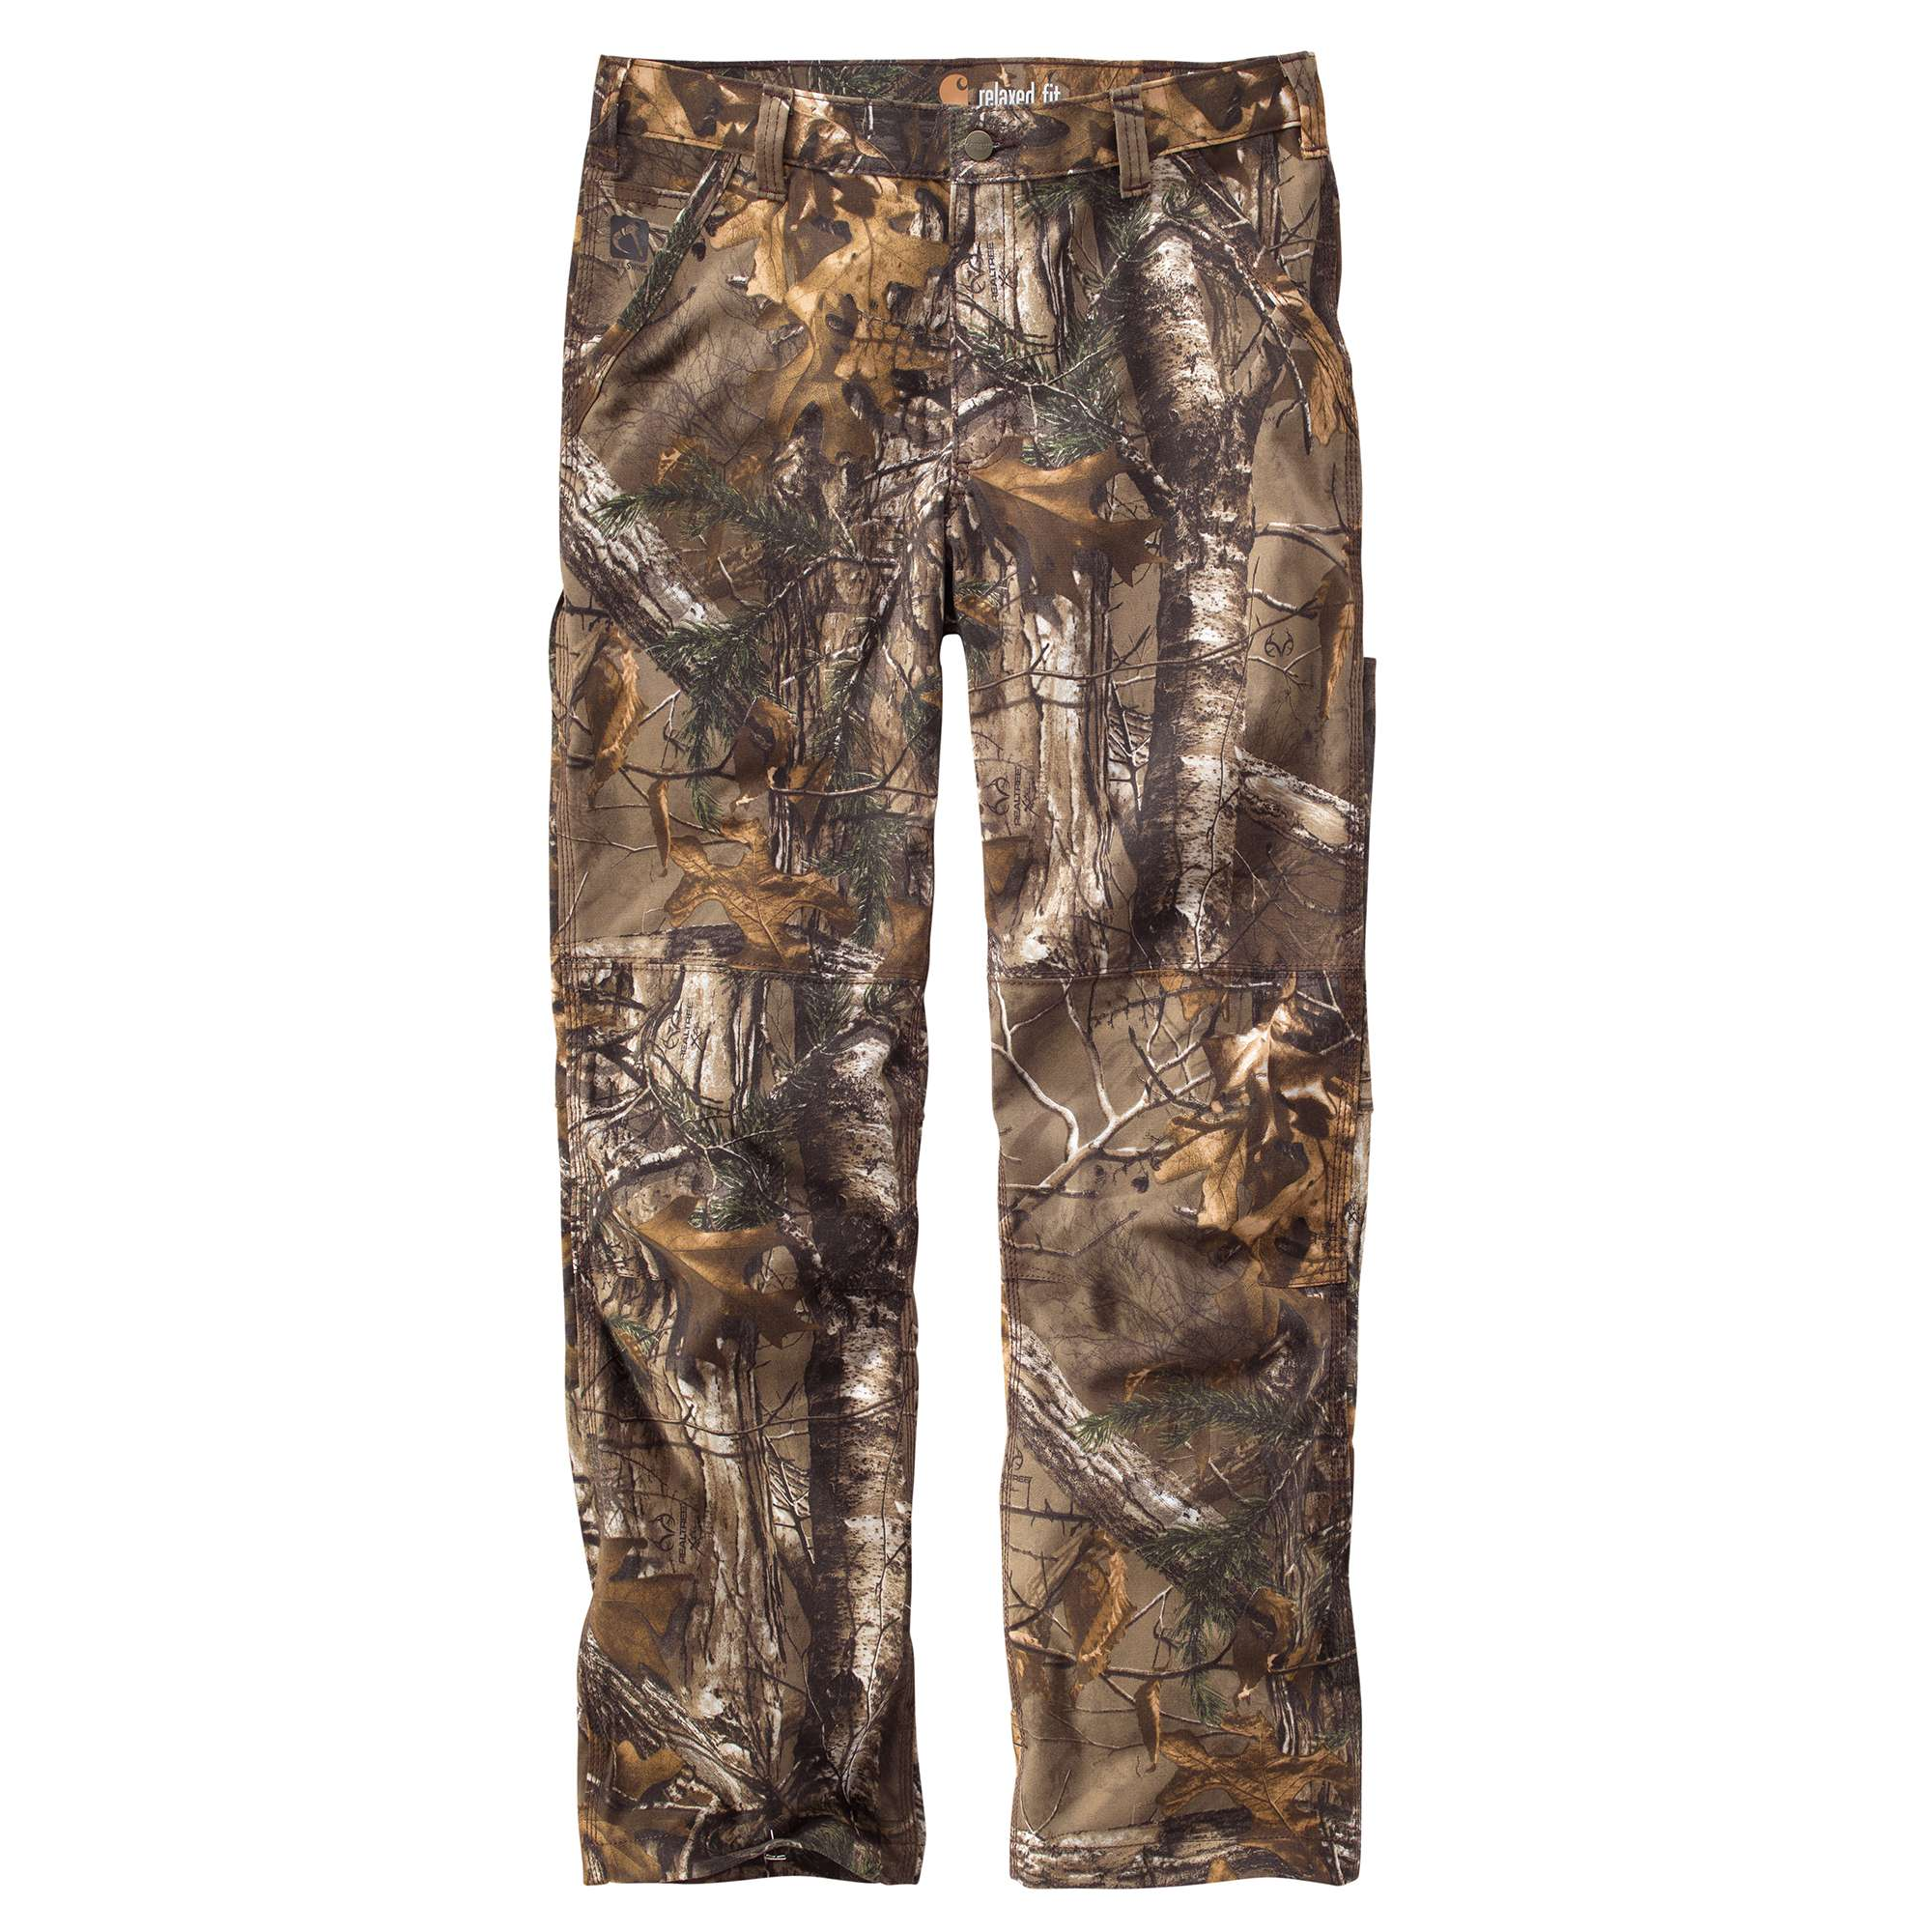 MEN'S FULL SWING® CAMO CRYDER WORK PANT